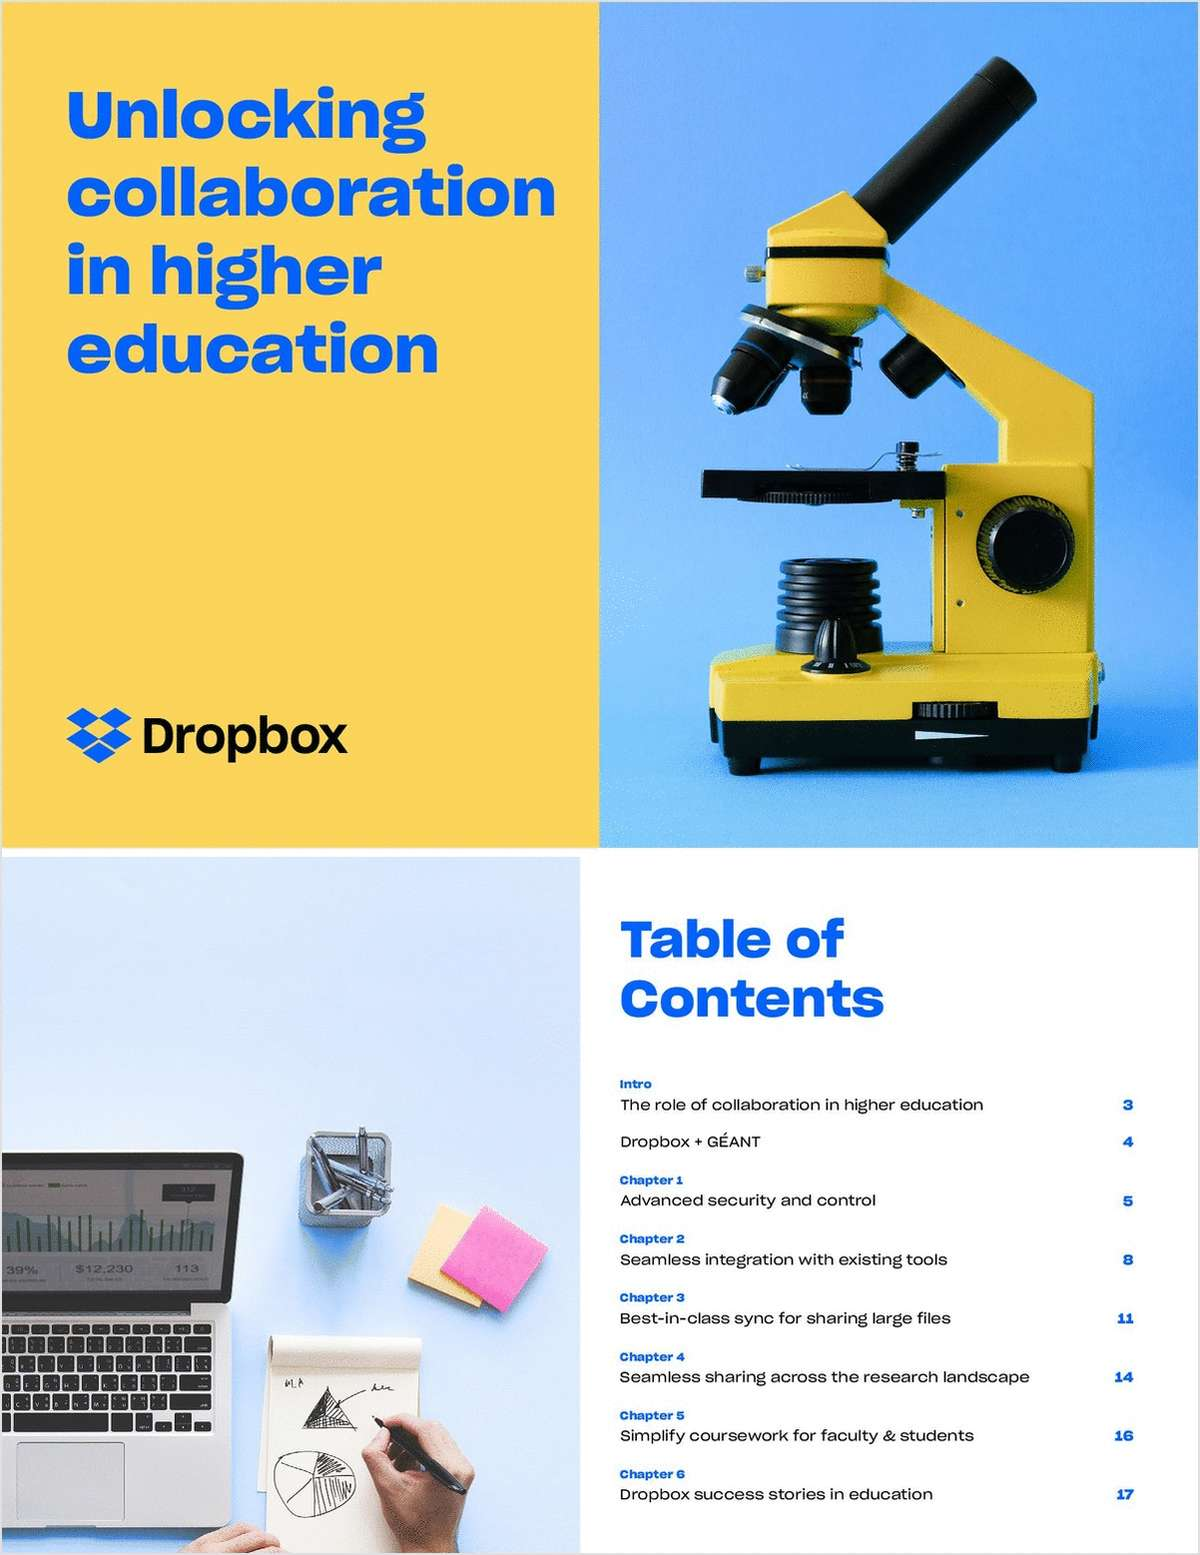 Unlocking Collaboration in Higher Education Fuels Innovation